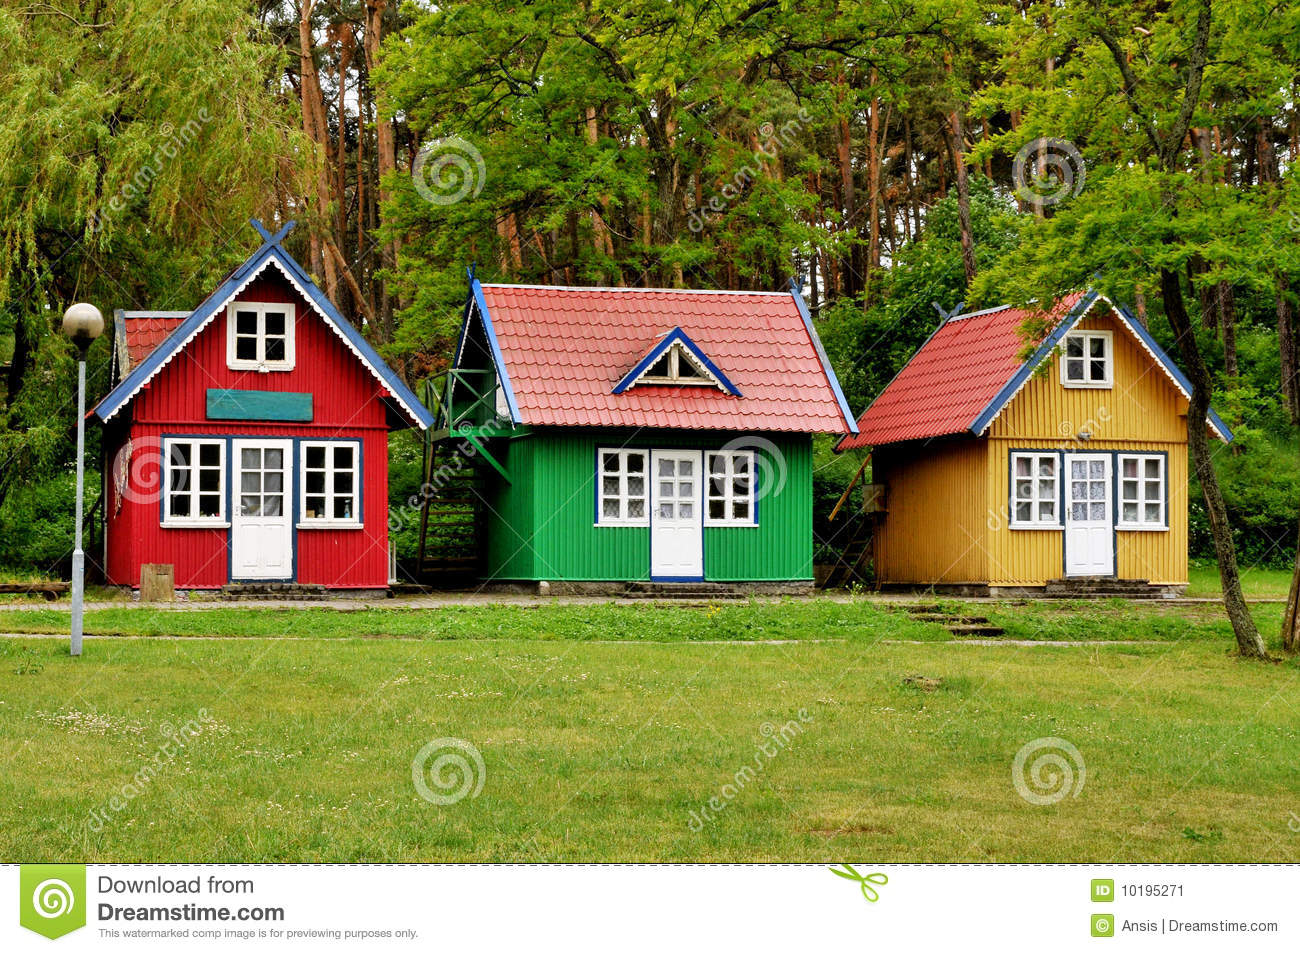 more similar stock images of little houses - Little Houses